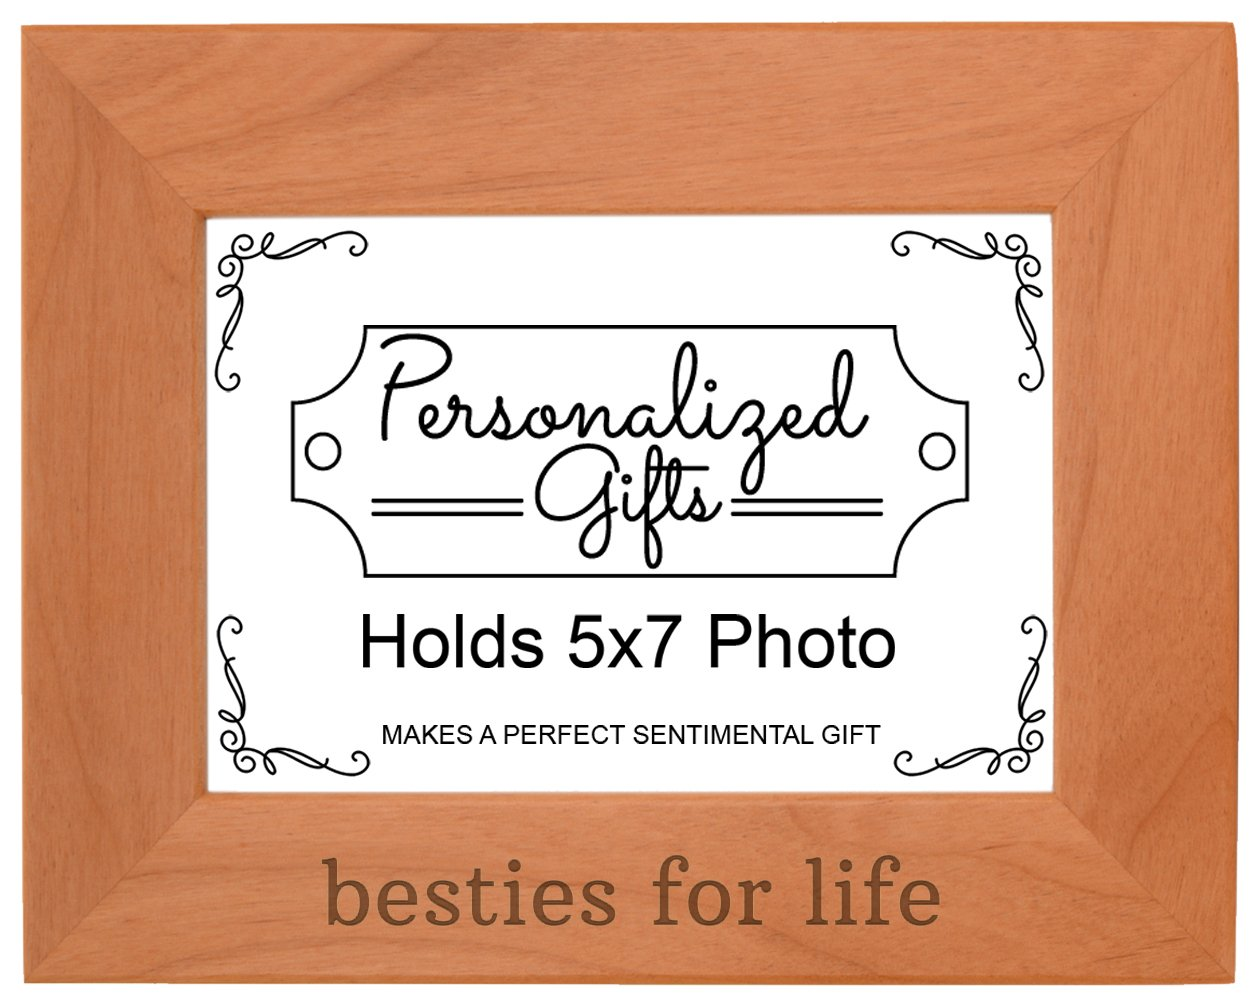 Besties for Life Best Friends Forever Gift Natural Wood Engraved 5x7 Landscape Picture Frame Wood